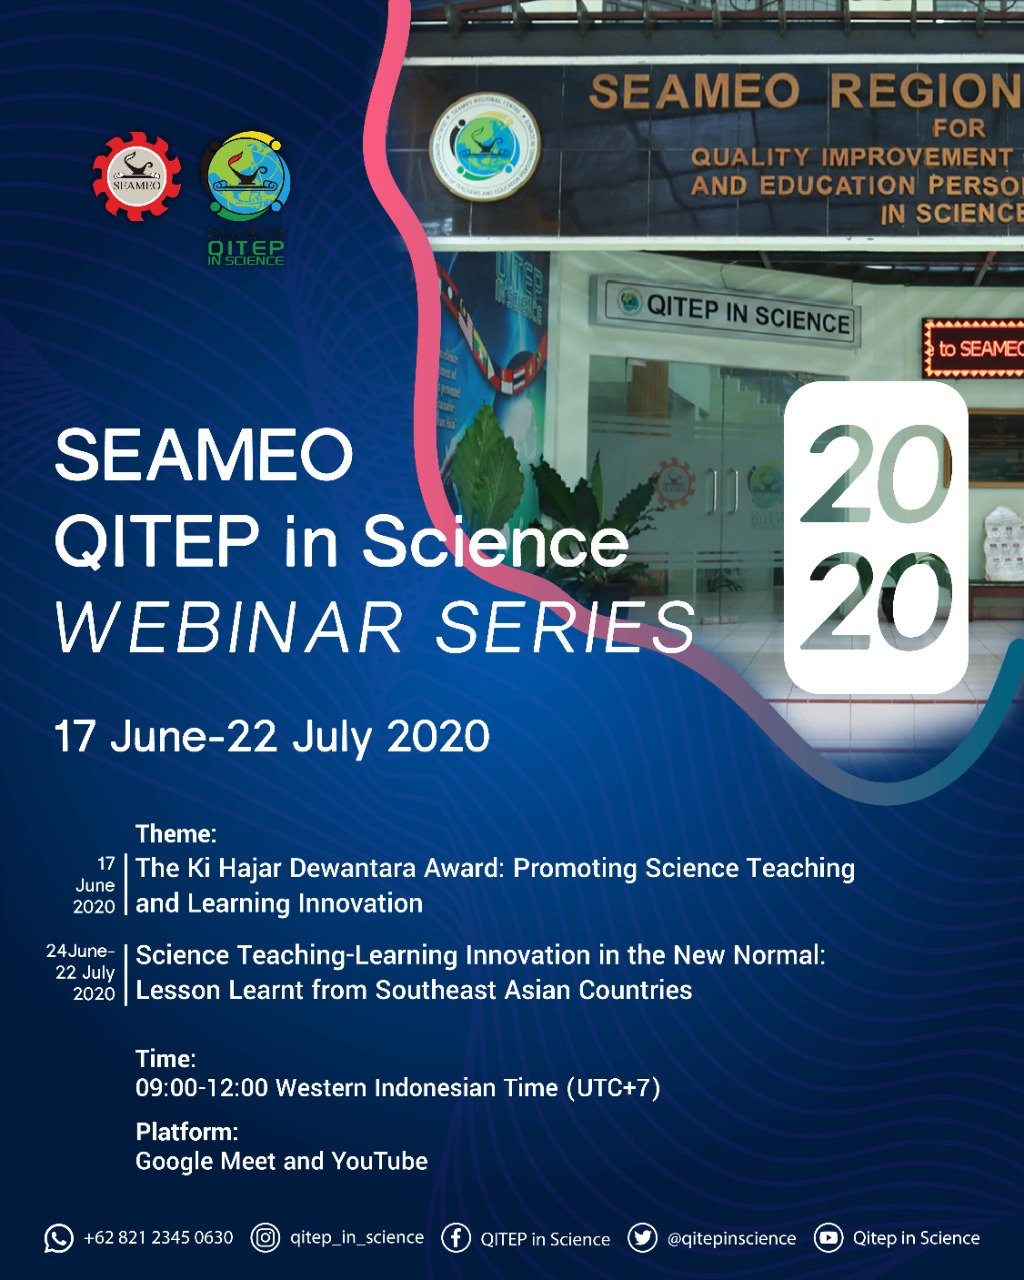 Webinar Series on Science Teaching and Learning Innovation in the New Normal: Lesson-Learnt from Southeast Asian Countries